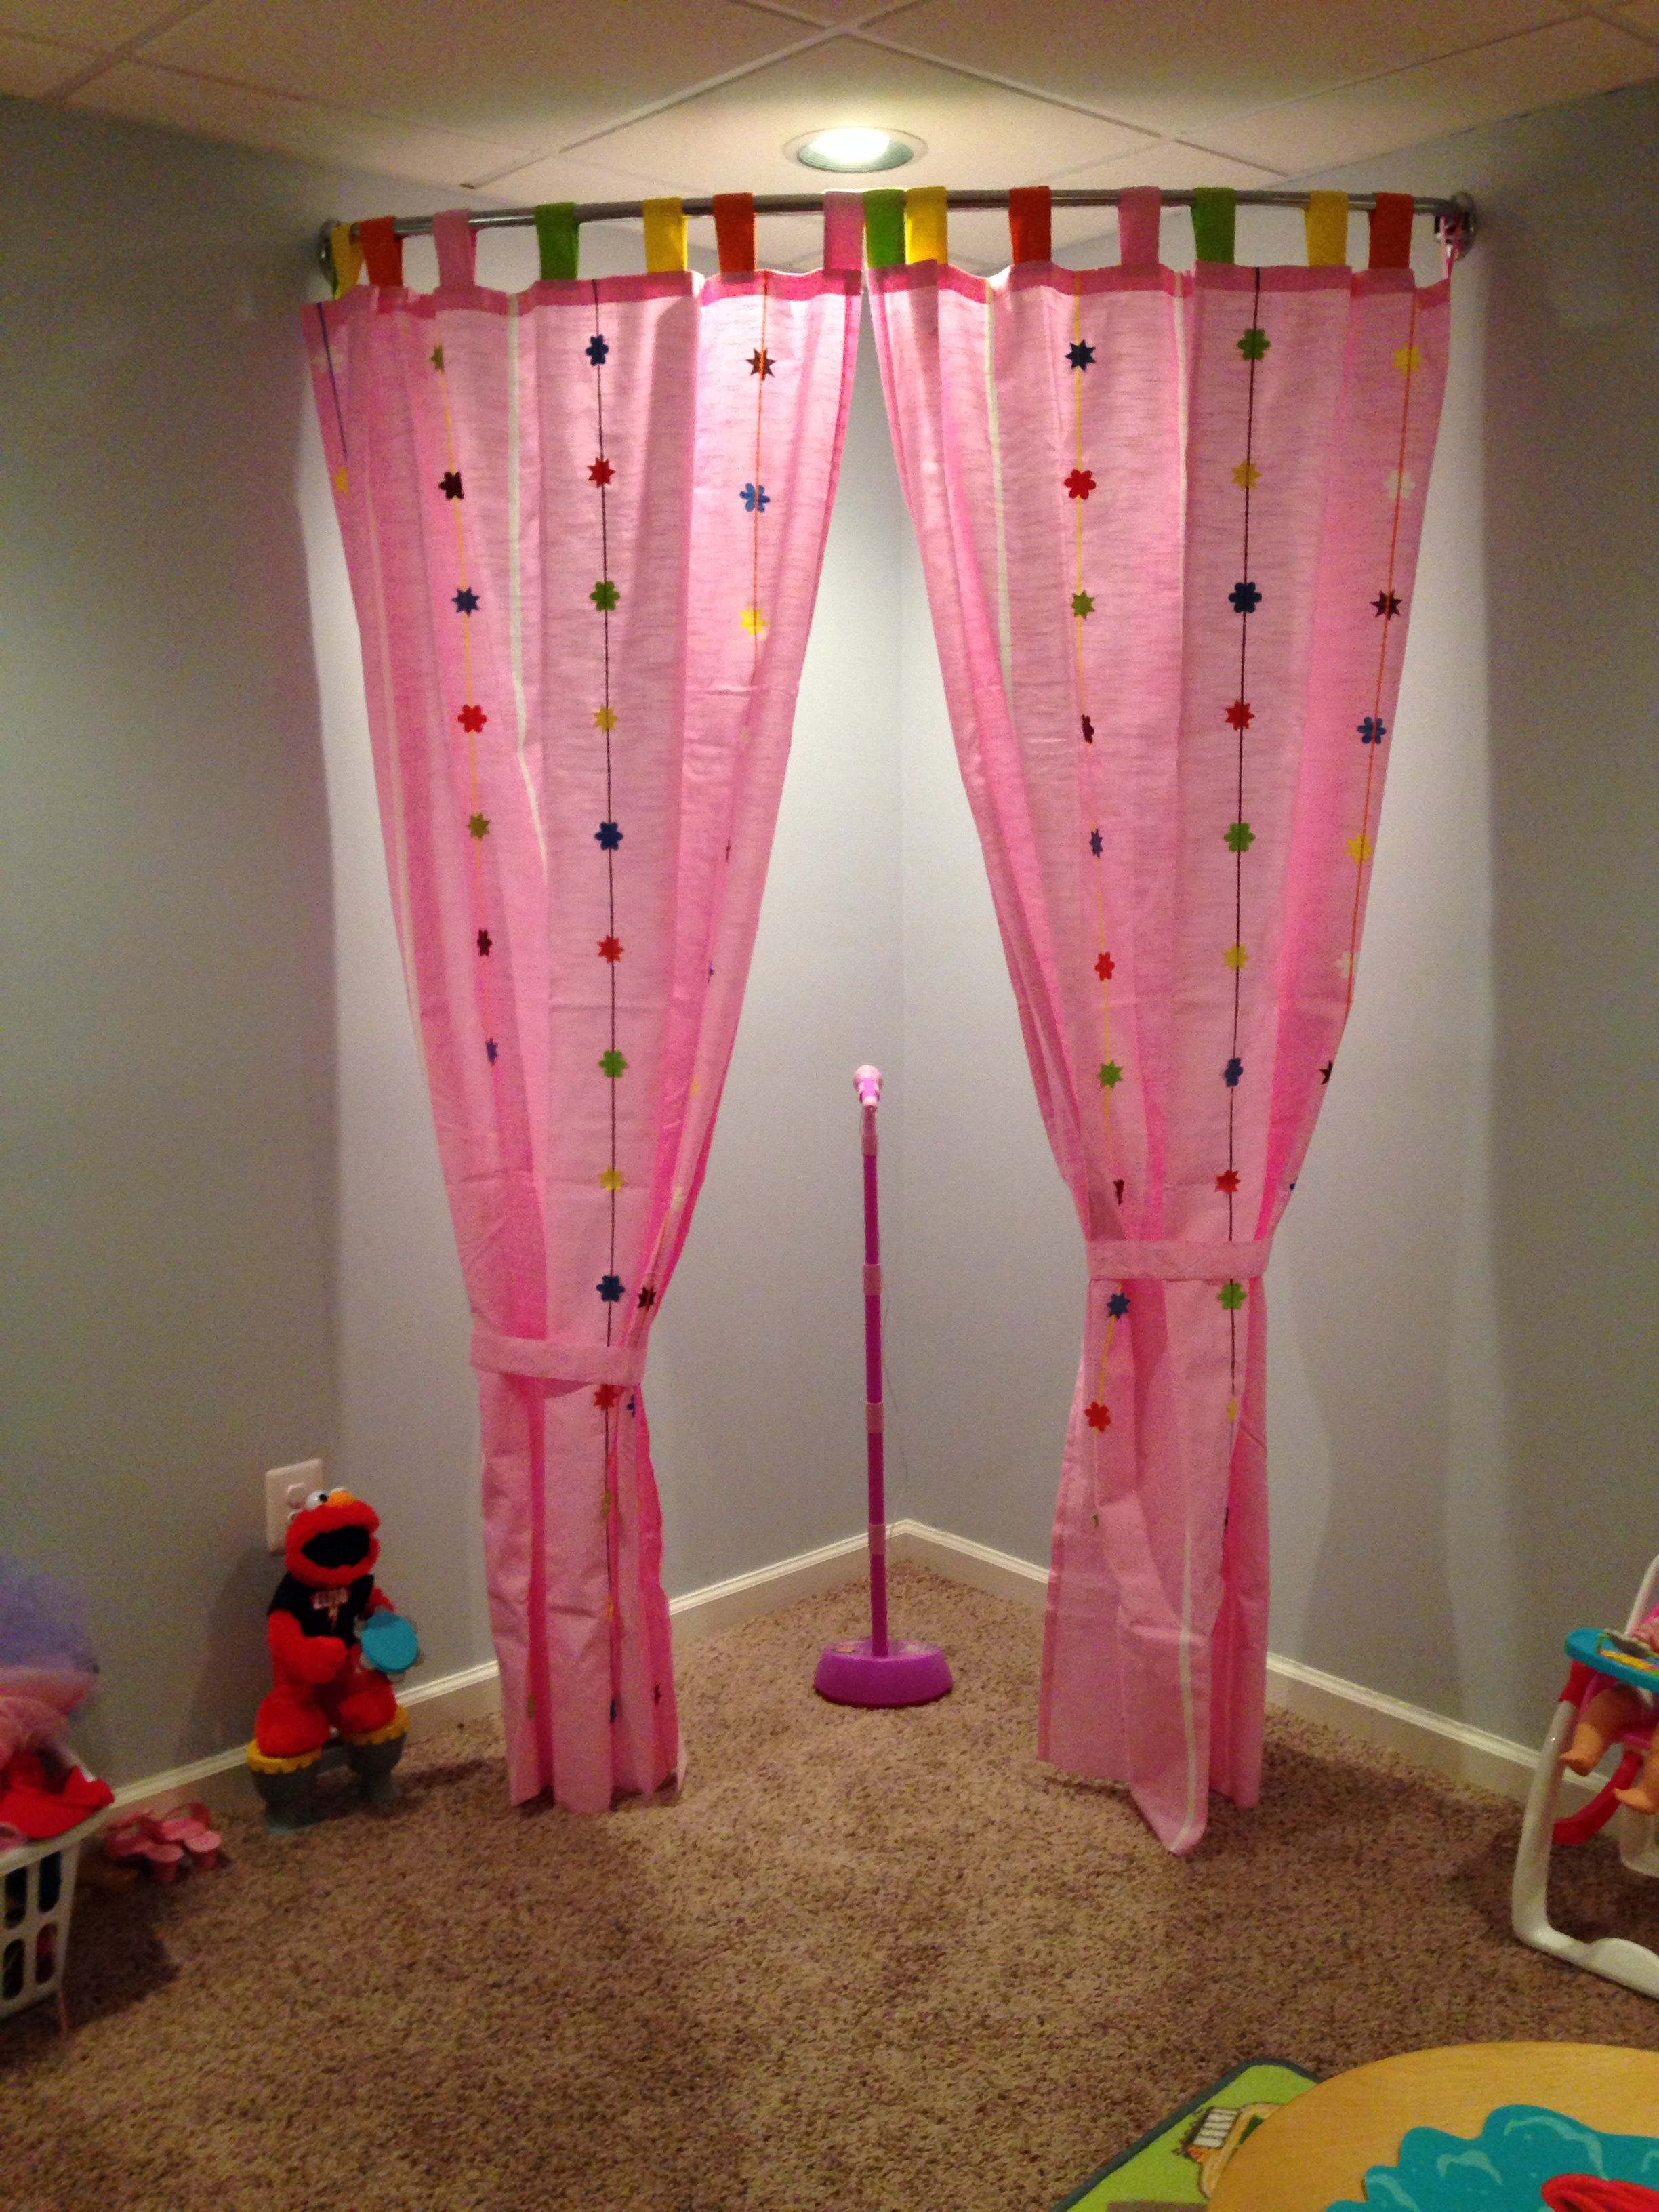 Here S A Playroom Stage Idea I Used Curved Shower Curtain Rod It Is Zenith Brand From The Curtains Are Ikea